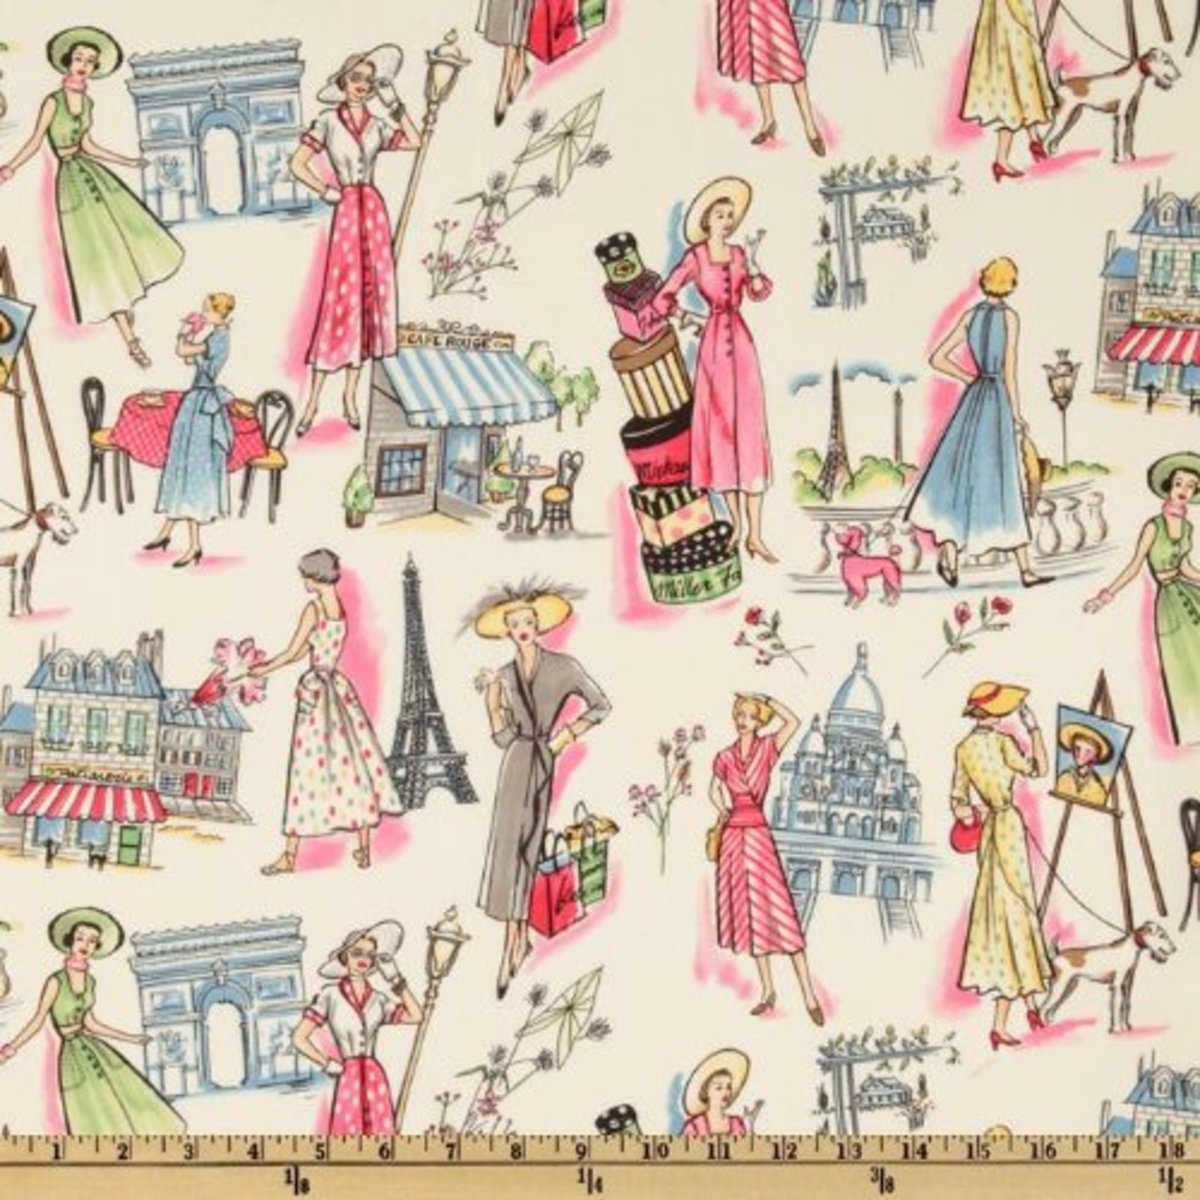 This Springtime in Paris fabric is reminiscent of a vintage issue of Vogue